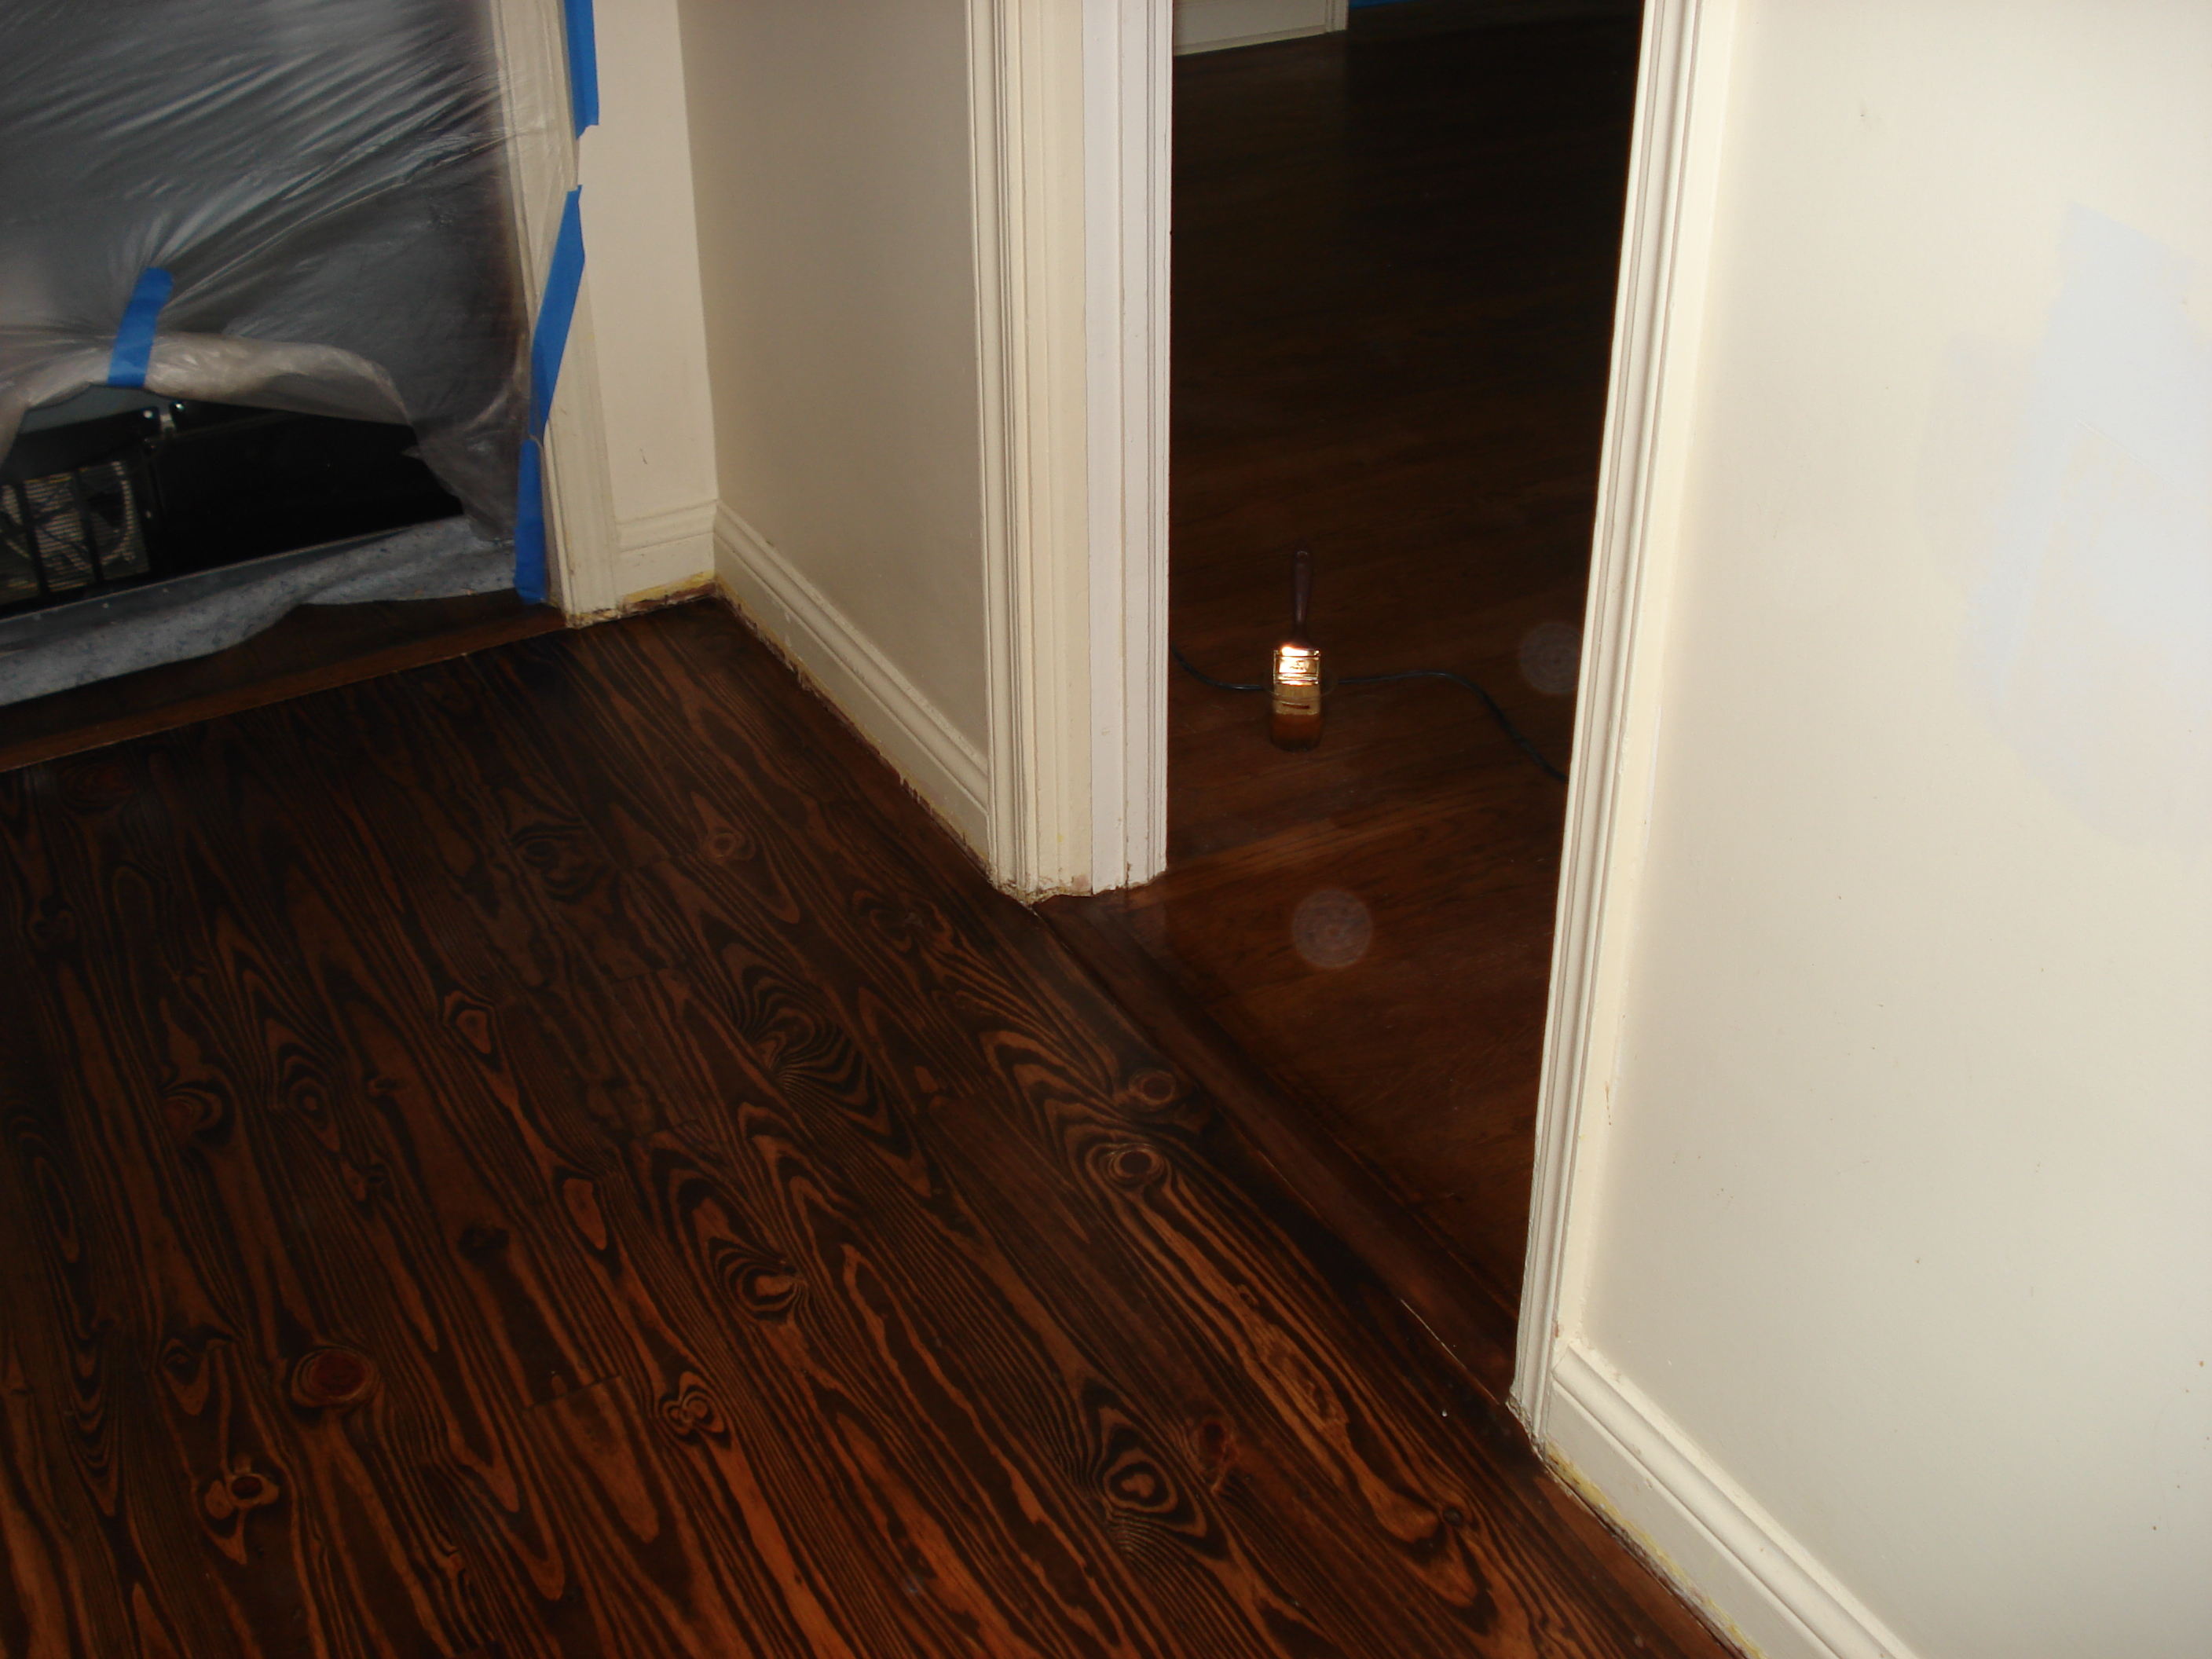 Linoleum Flooring Near Me Of Hardwood Floors Near Me 28 Images Vishal S Wood